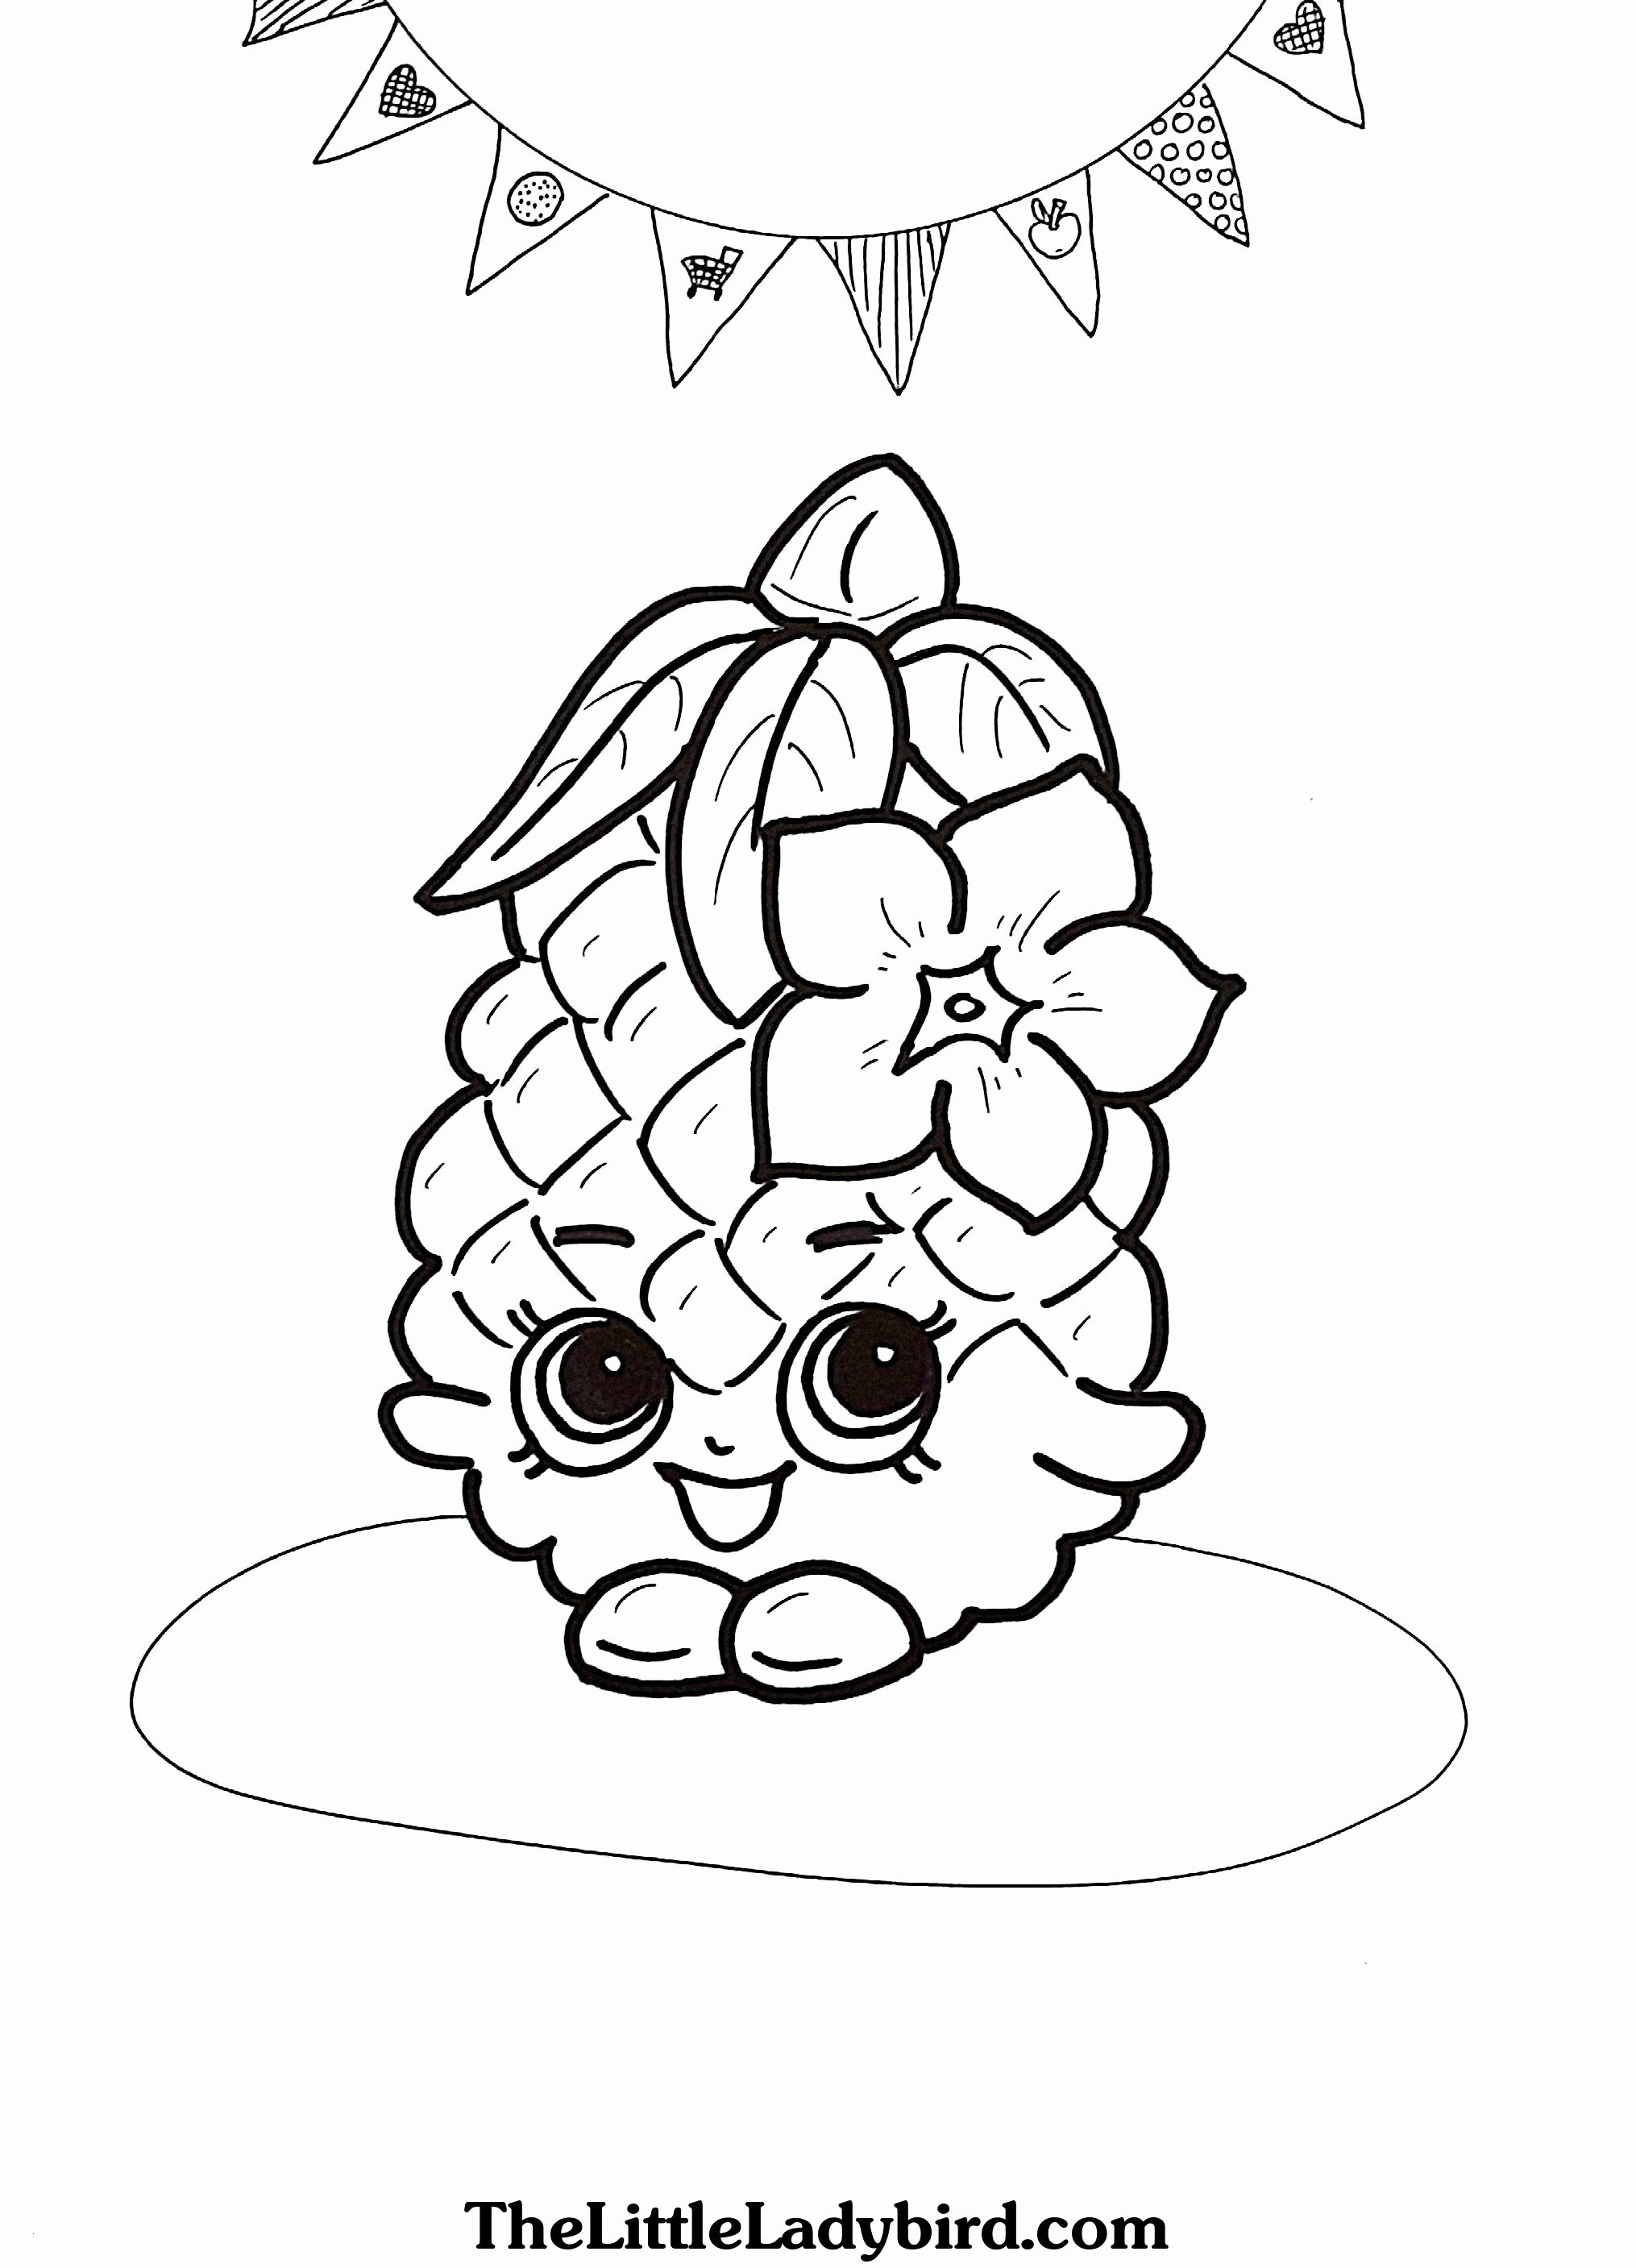 free mario coloring pages Collection-Nexo Knight Coloring Pages Awesome Best Free Mario Coloring Pages Schön Ausmalbilder Lego Nexo Knights 18-a